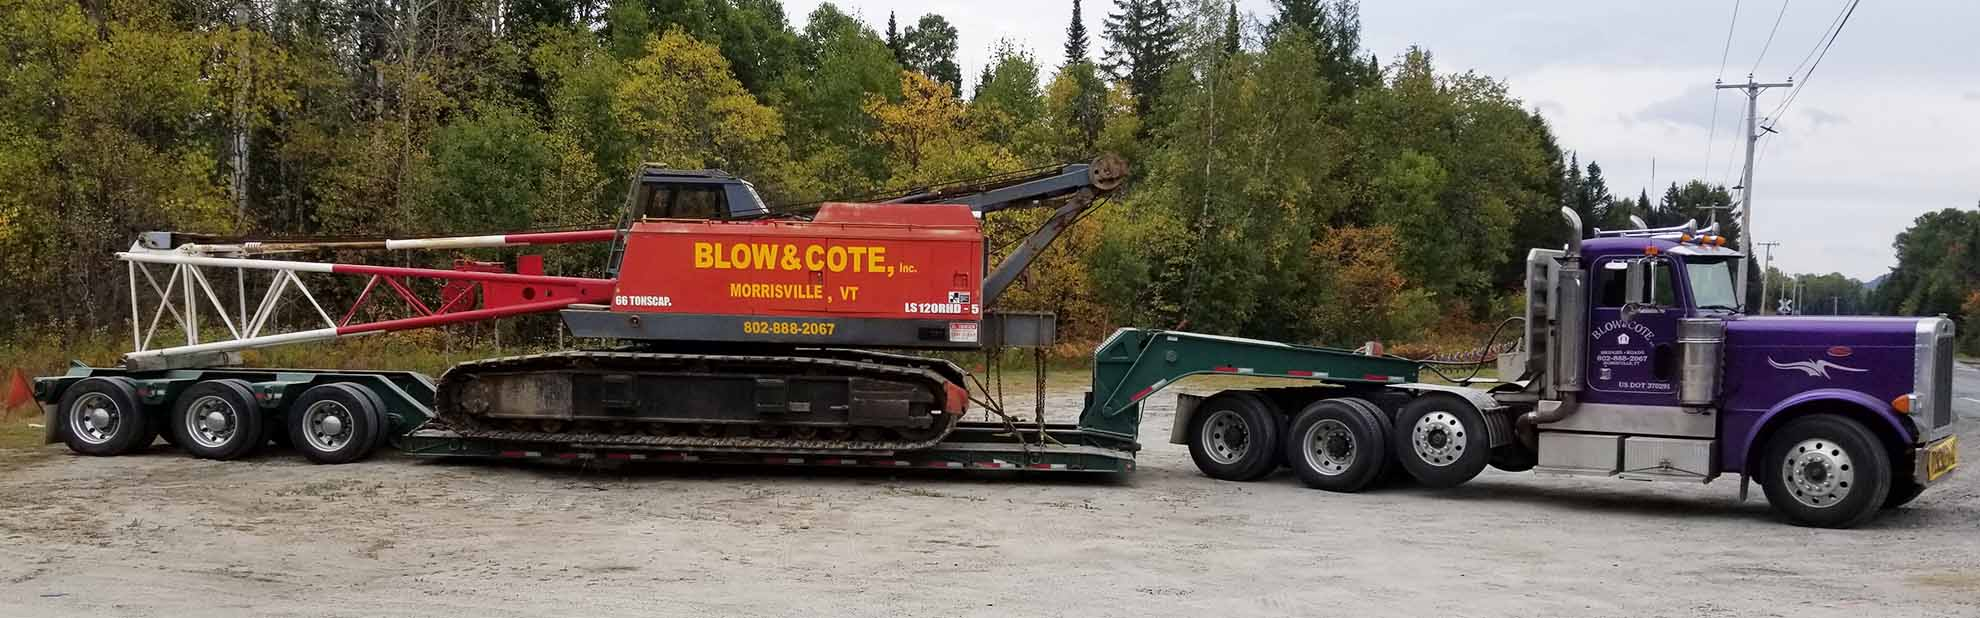 Equipment Hauling Based in Morrisville Vermont